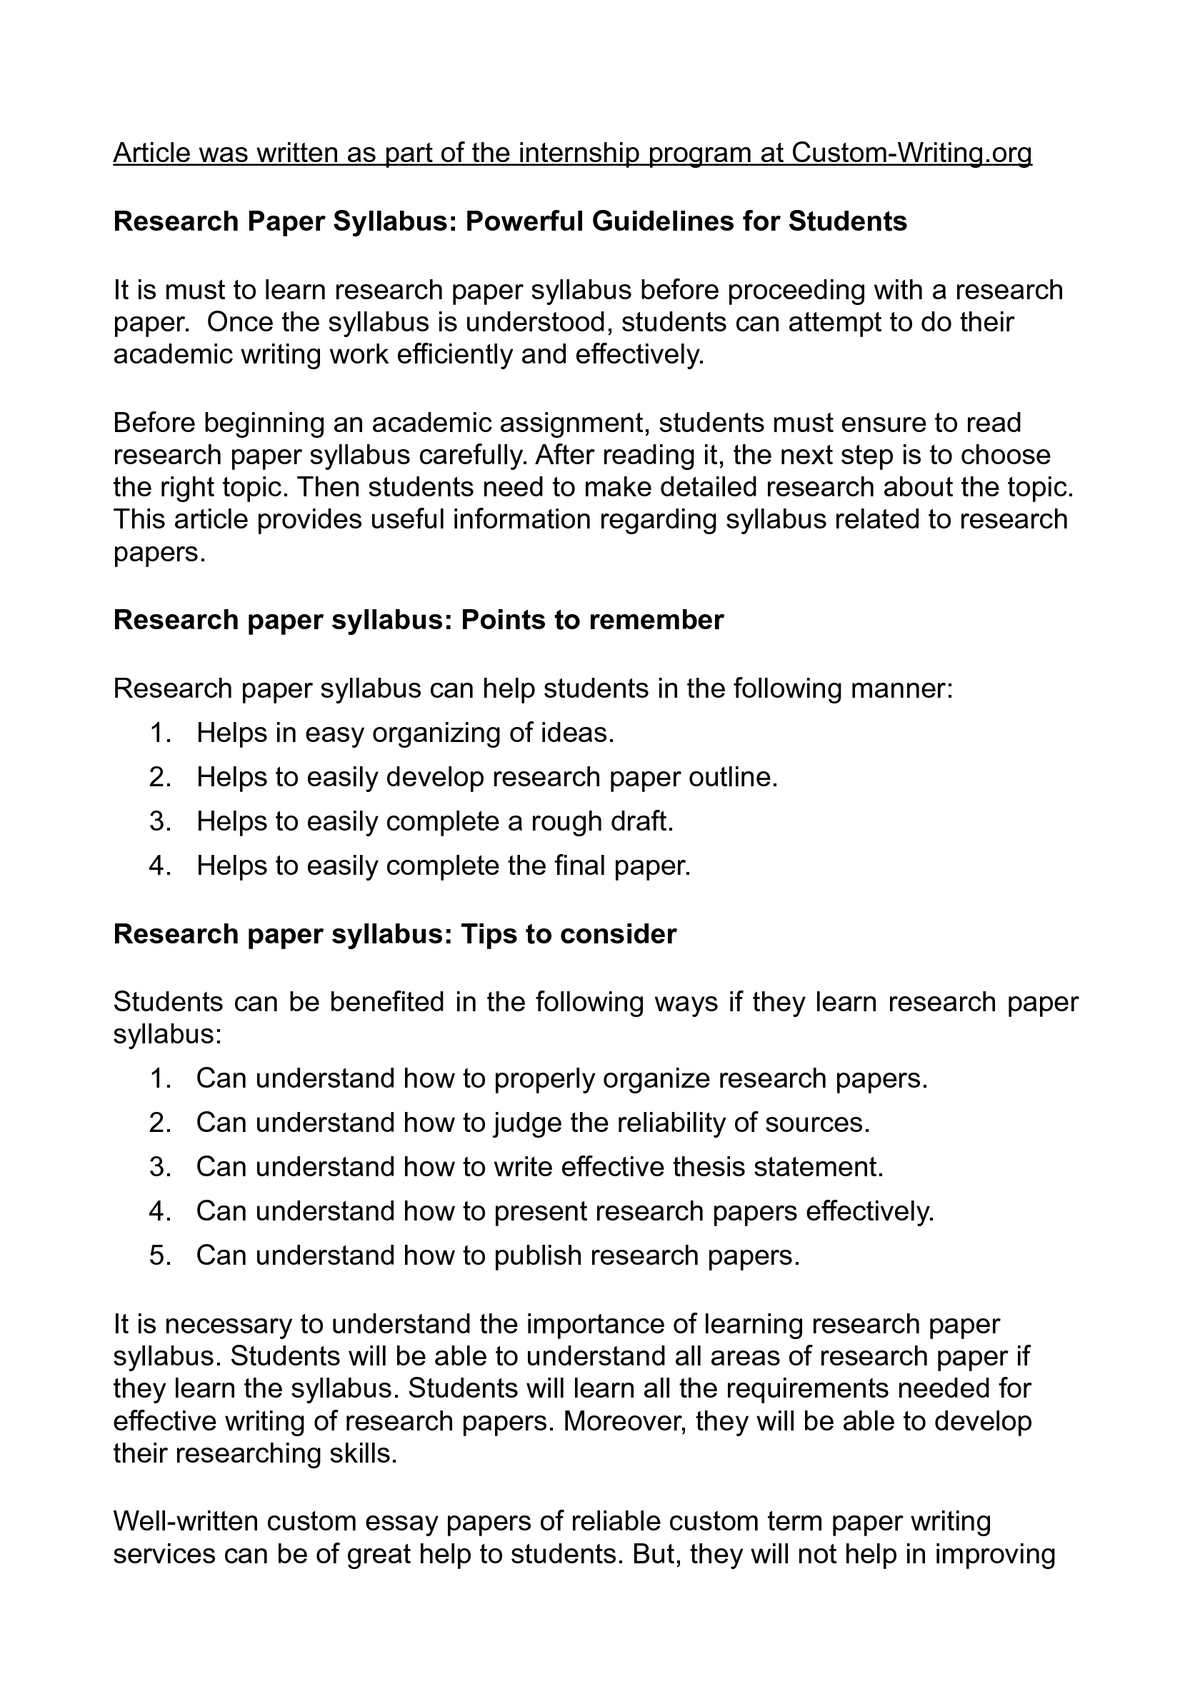 Organize a research paper